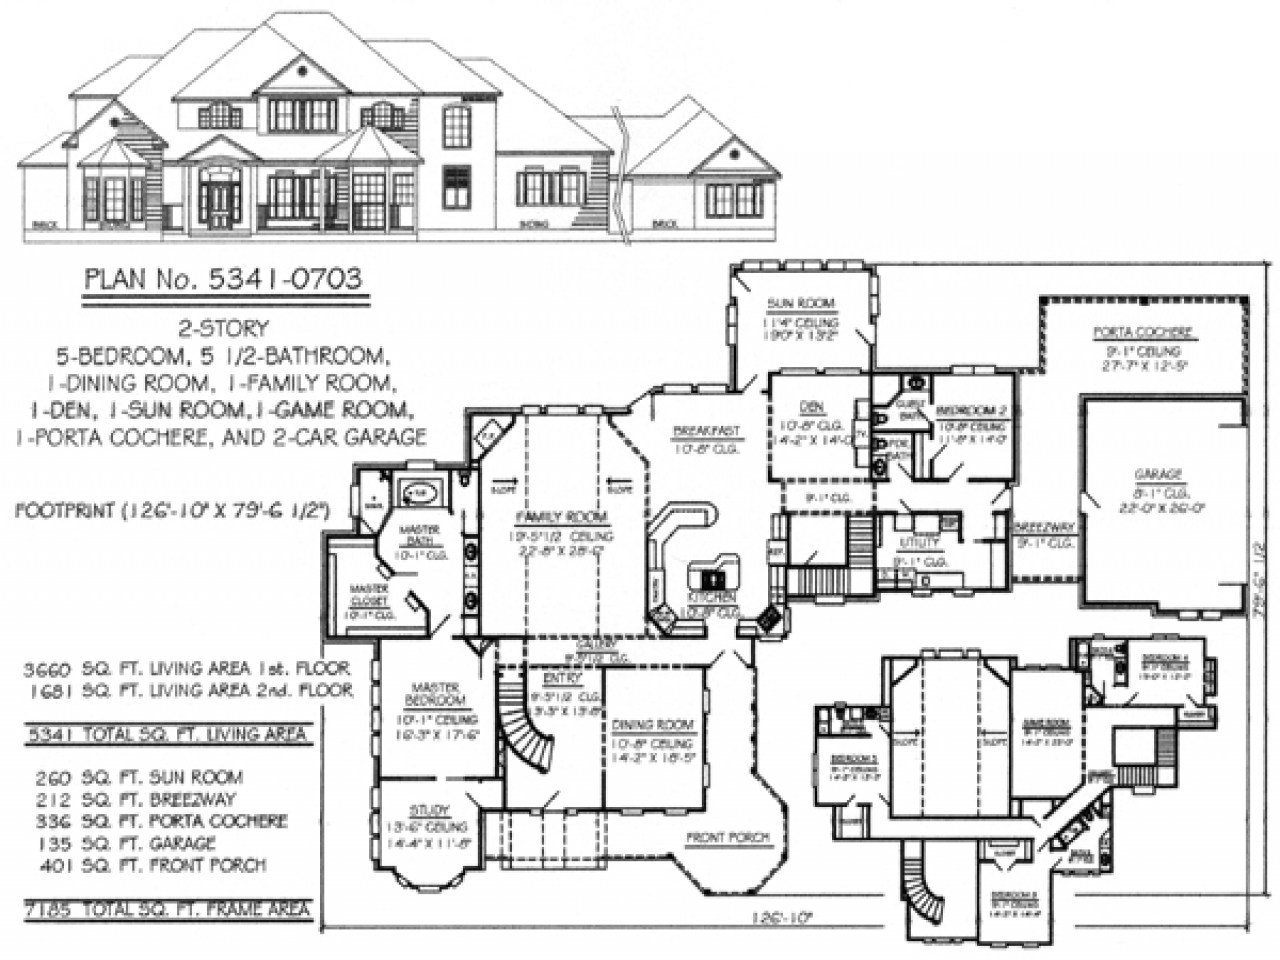 Best Floor Plans For Small Homes Floor Plans For 5 Bedroom House 2 Stories 2 Story 5 Bedroom Floor With Pictures